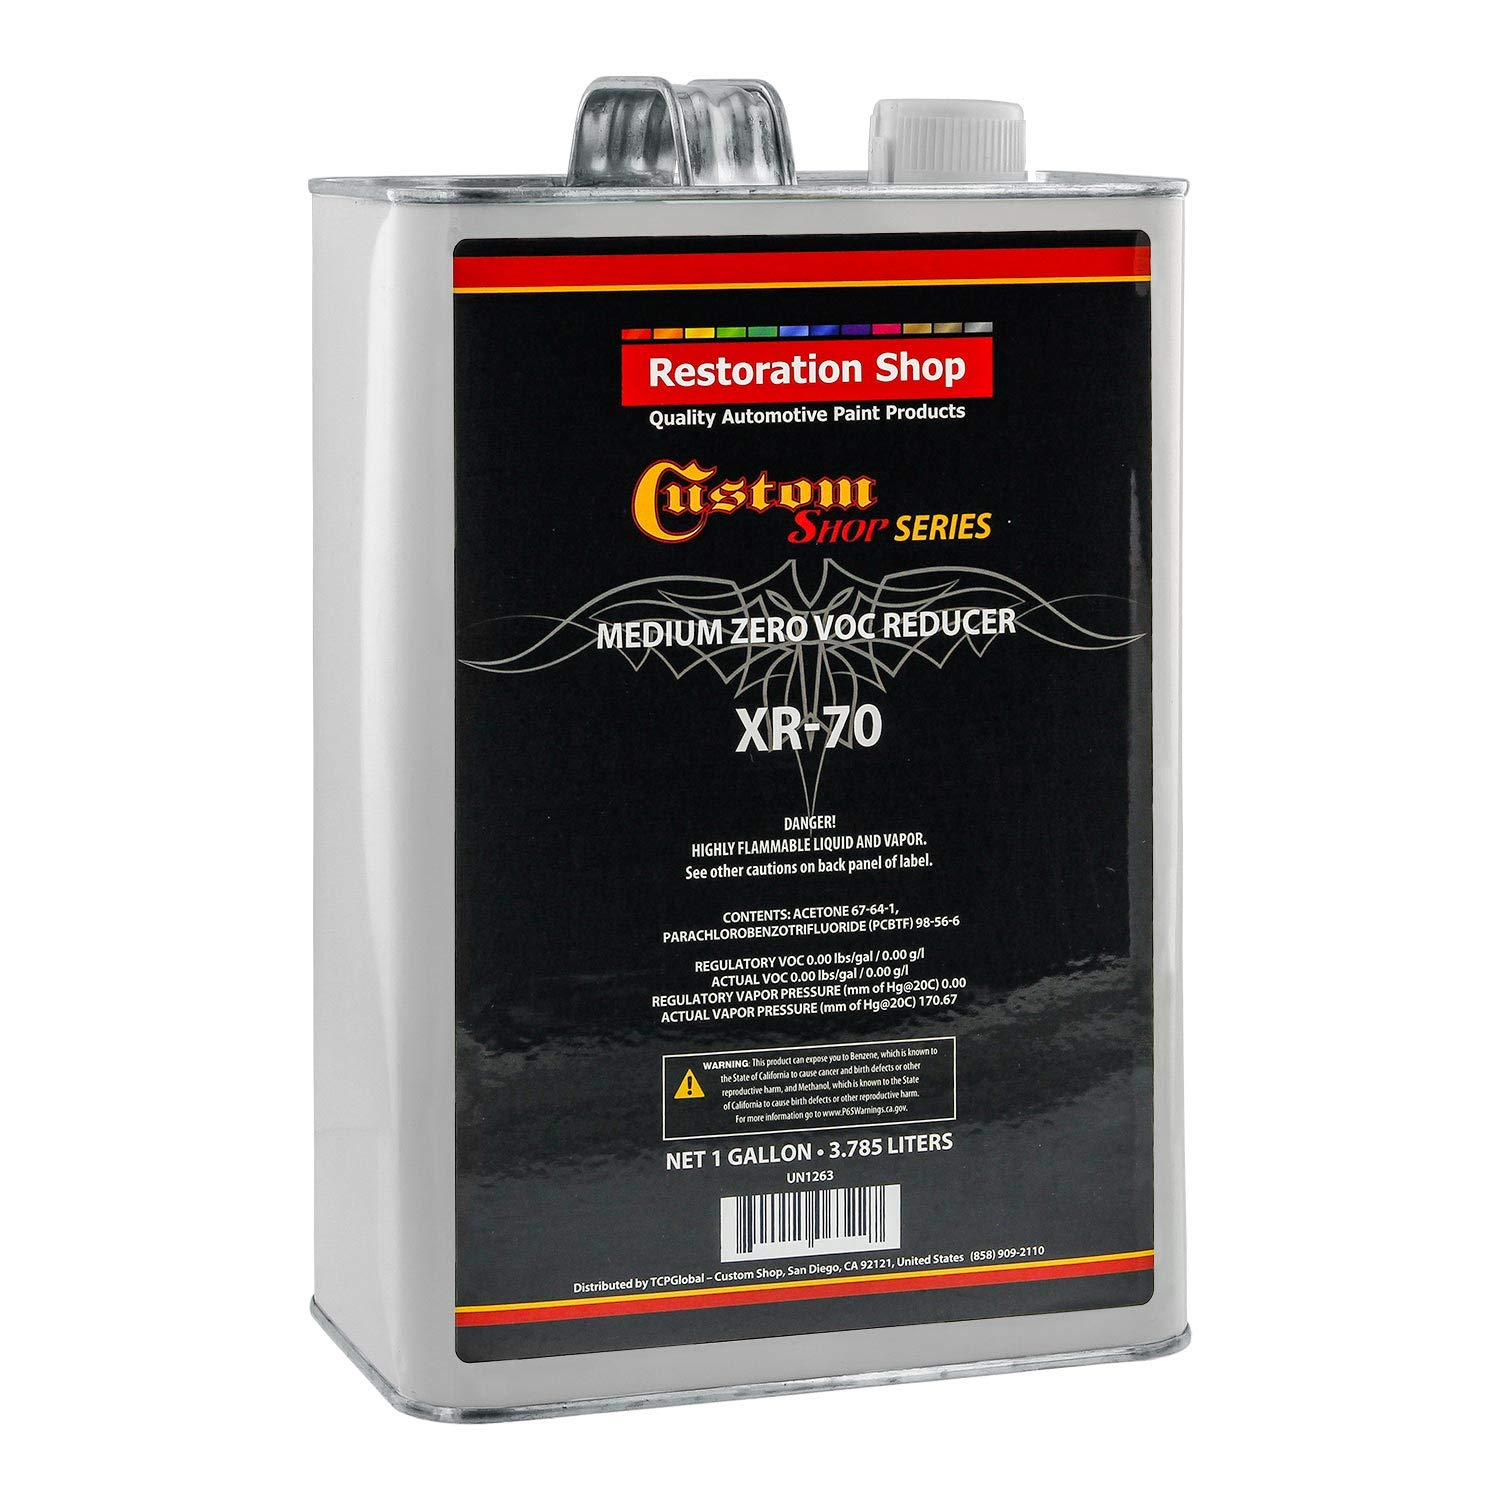 Restoration Shop/Custom Shop - XR70 Medium Zero V.O.C. Urethane Reducer (Gallon) for Automotive Paint and Industrial Paint Use for Low V.O.C. Compliance